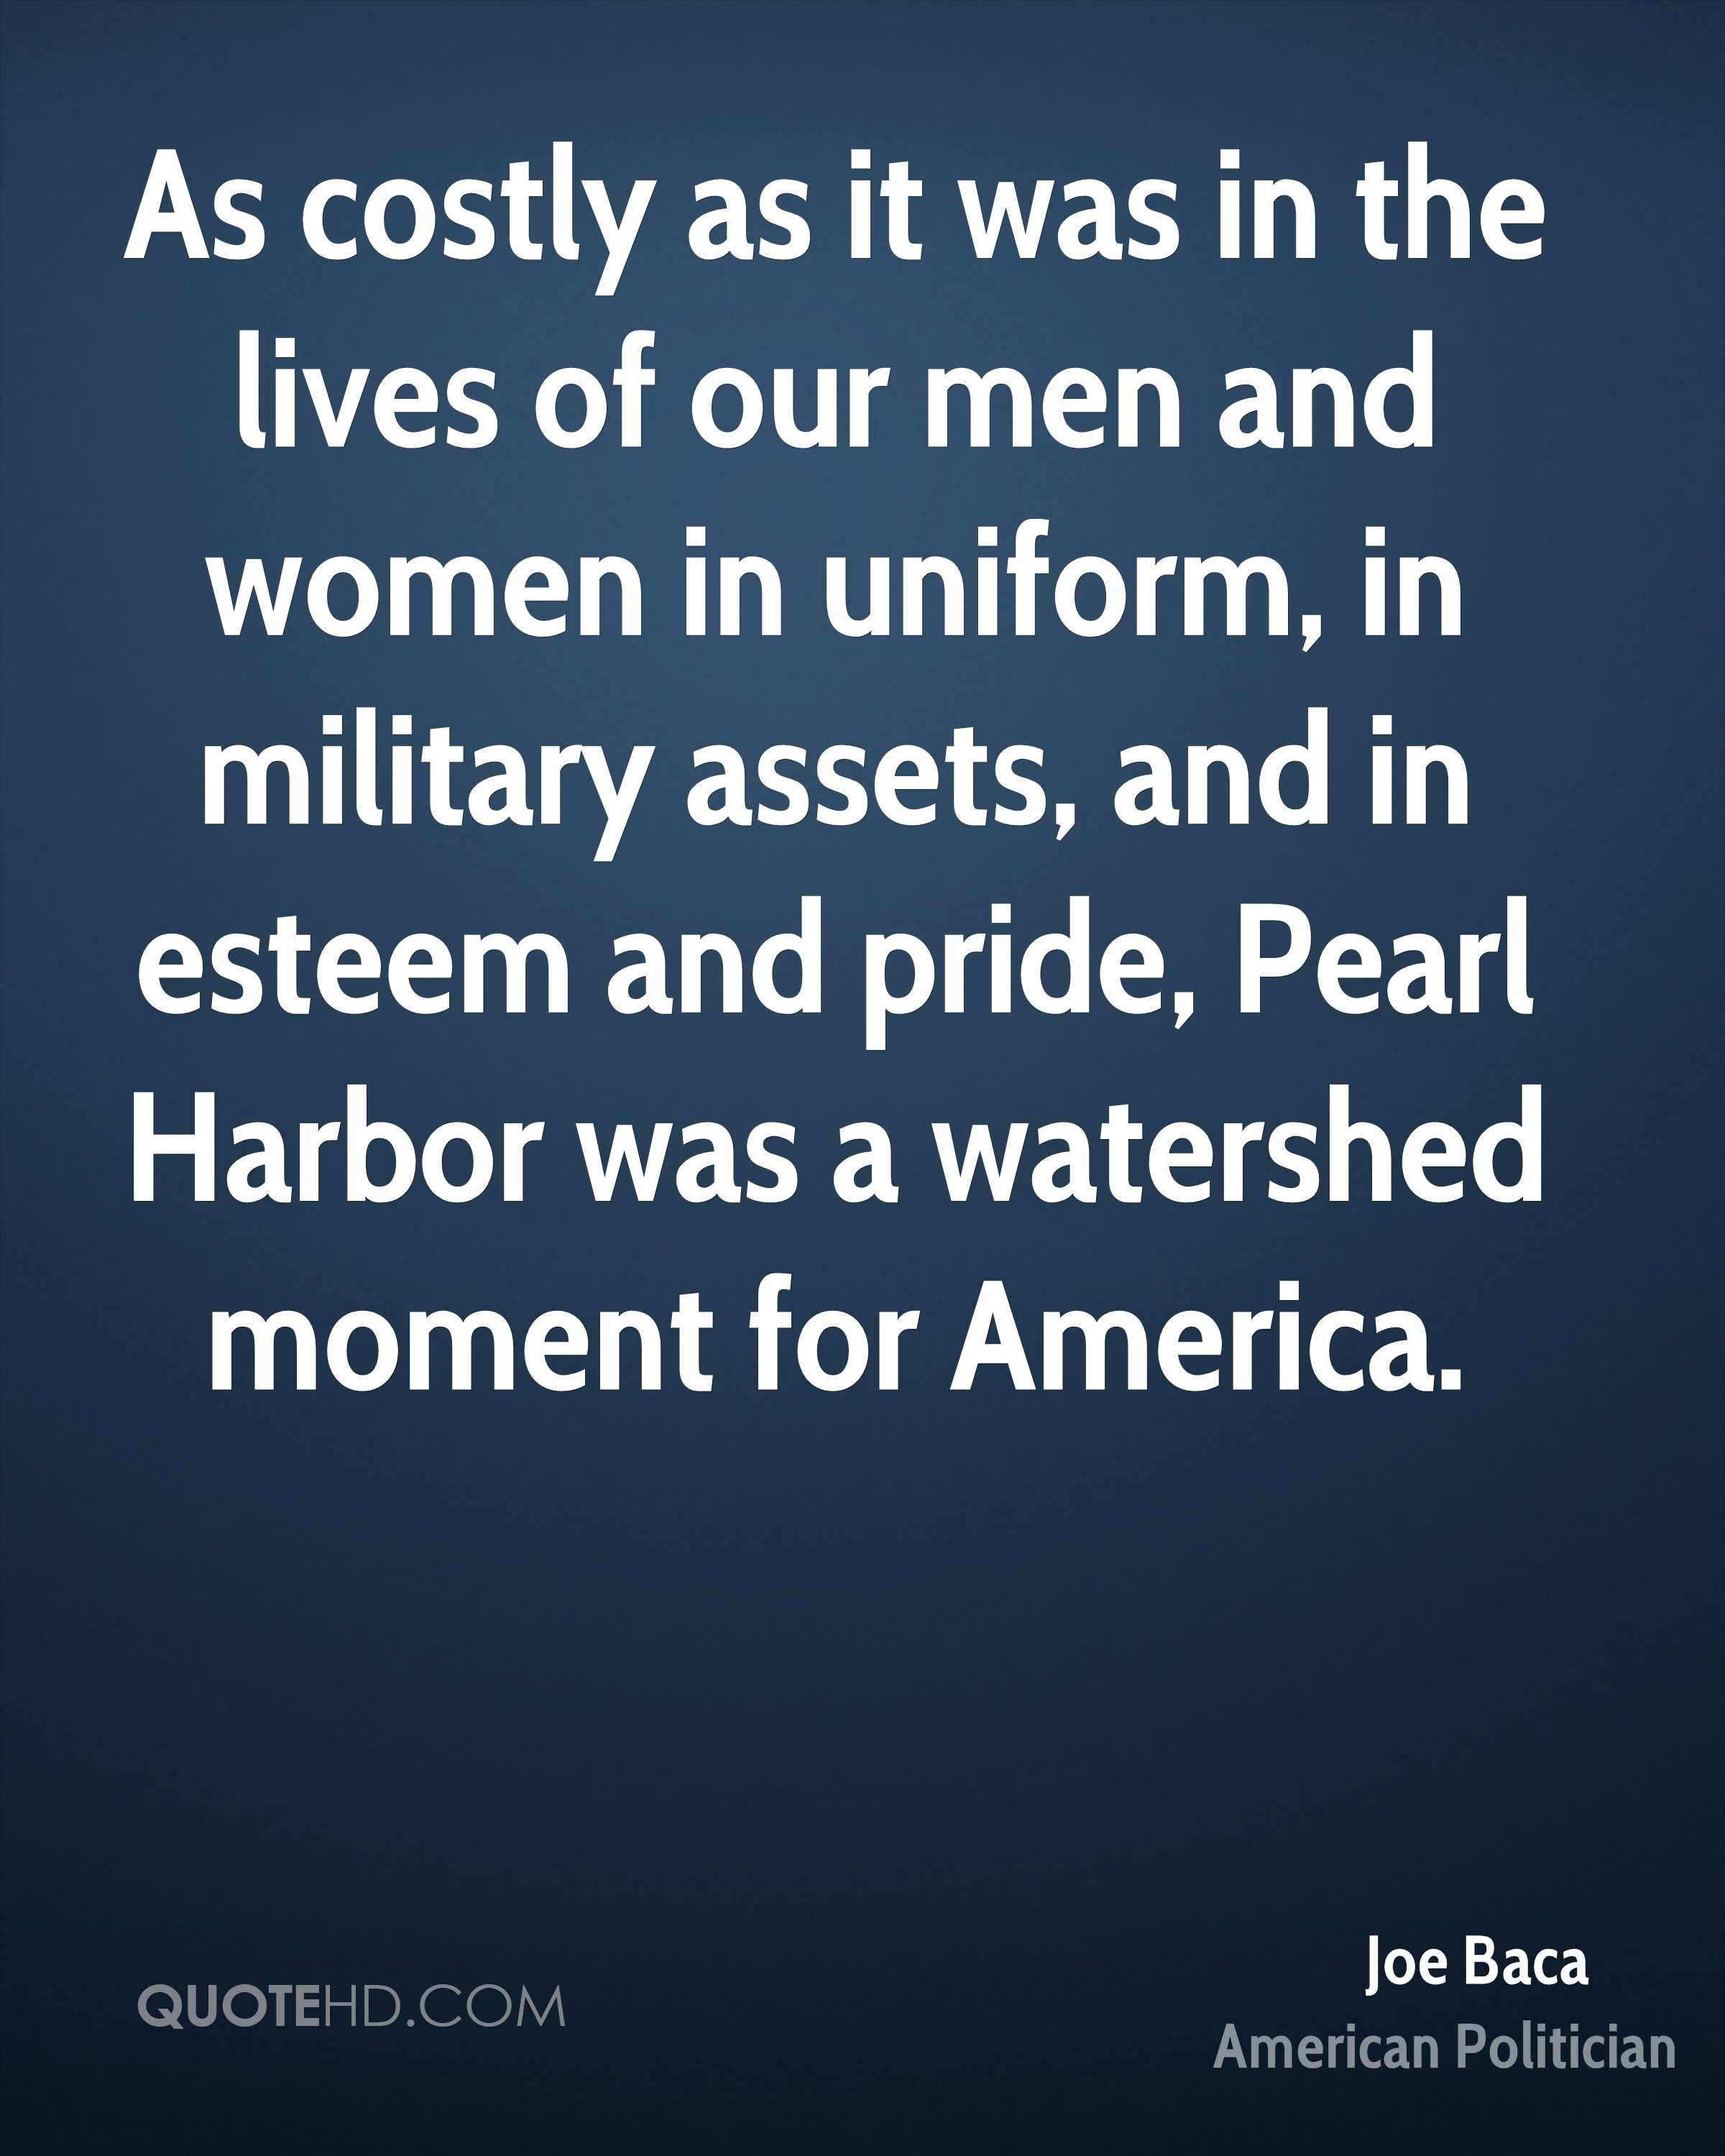 As costly as it was in the lives of our men and women in uniform, in military assets, and in esteem and pride, Pearl Harbor was a watershed moment for America.